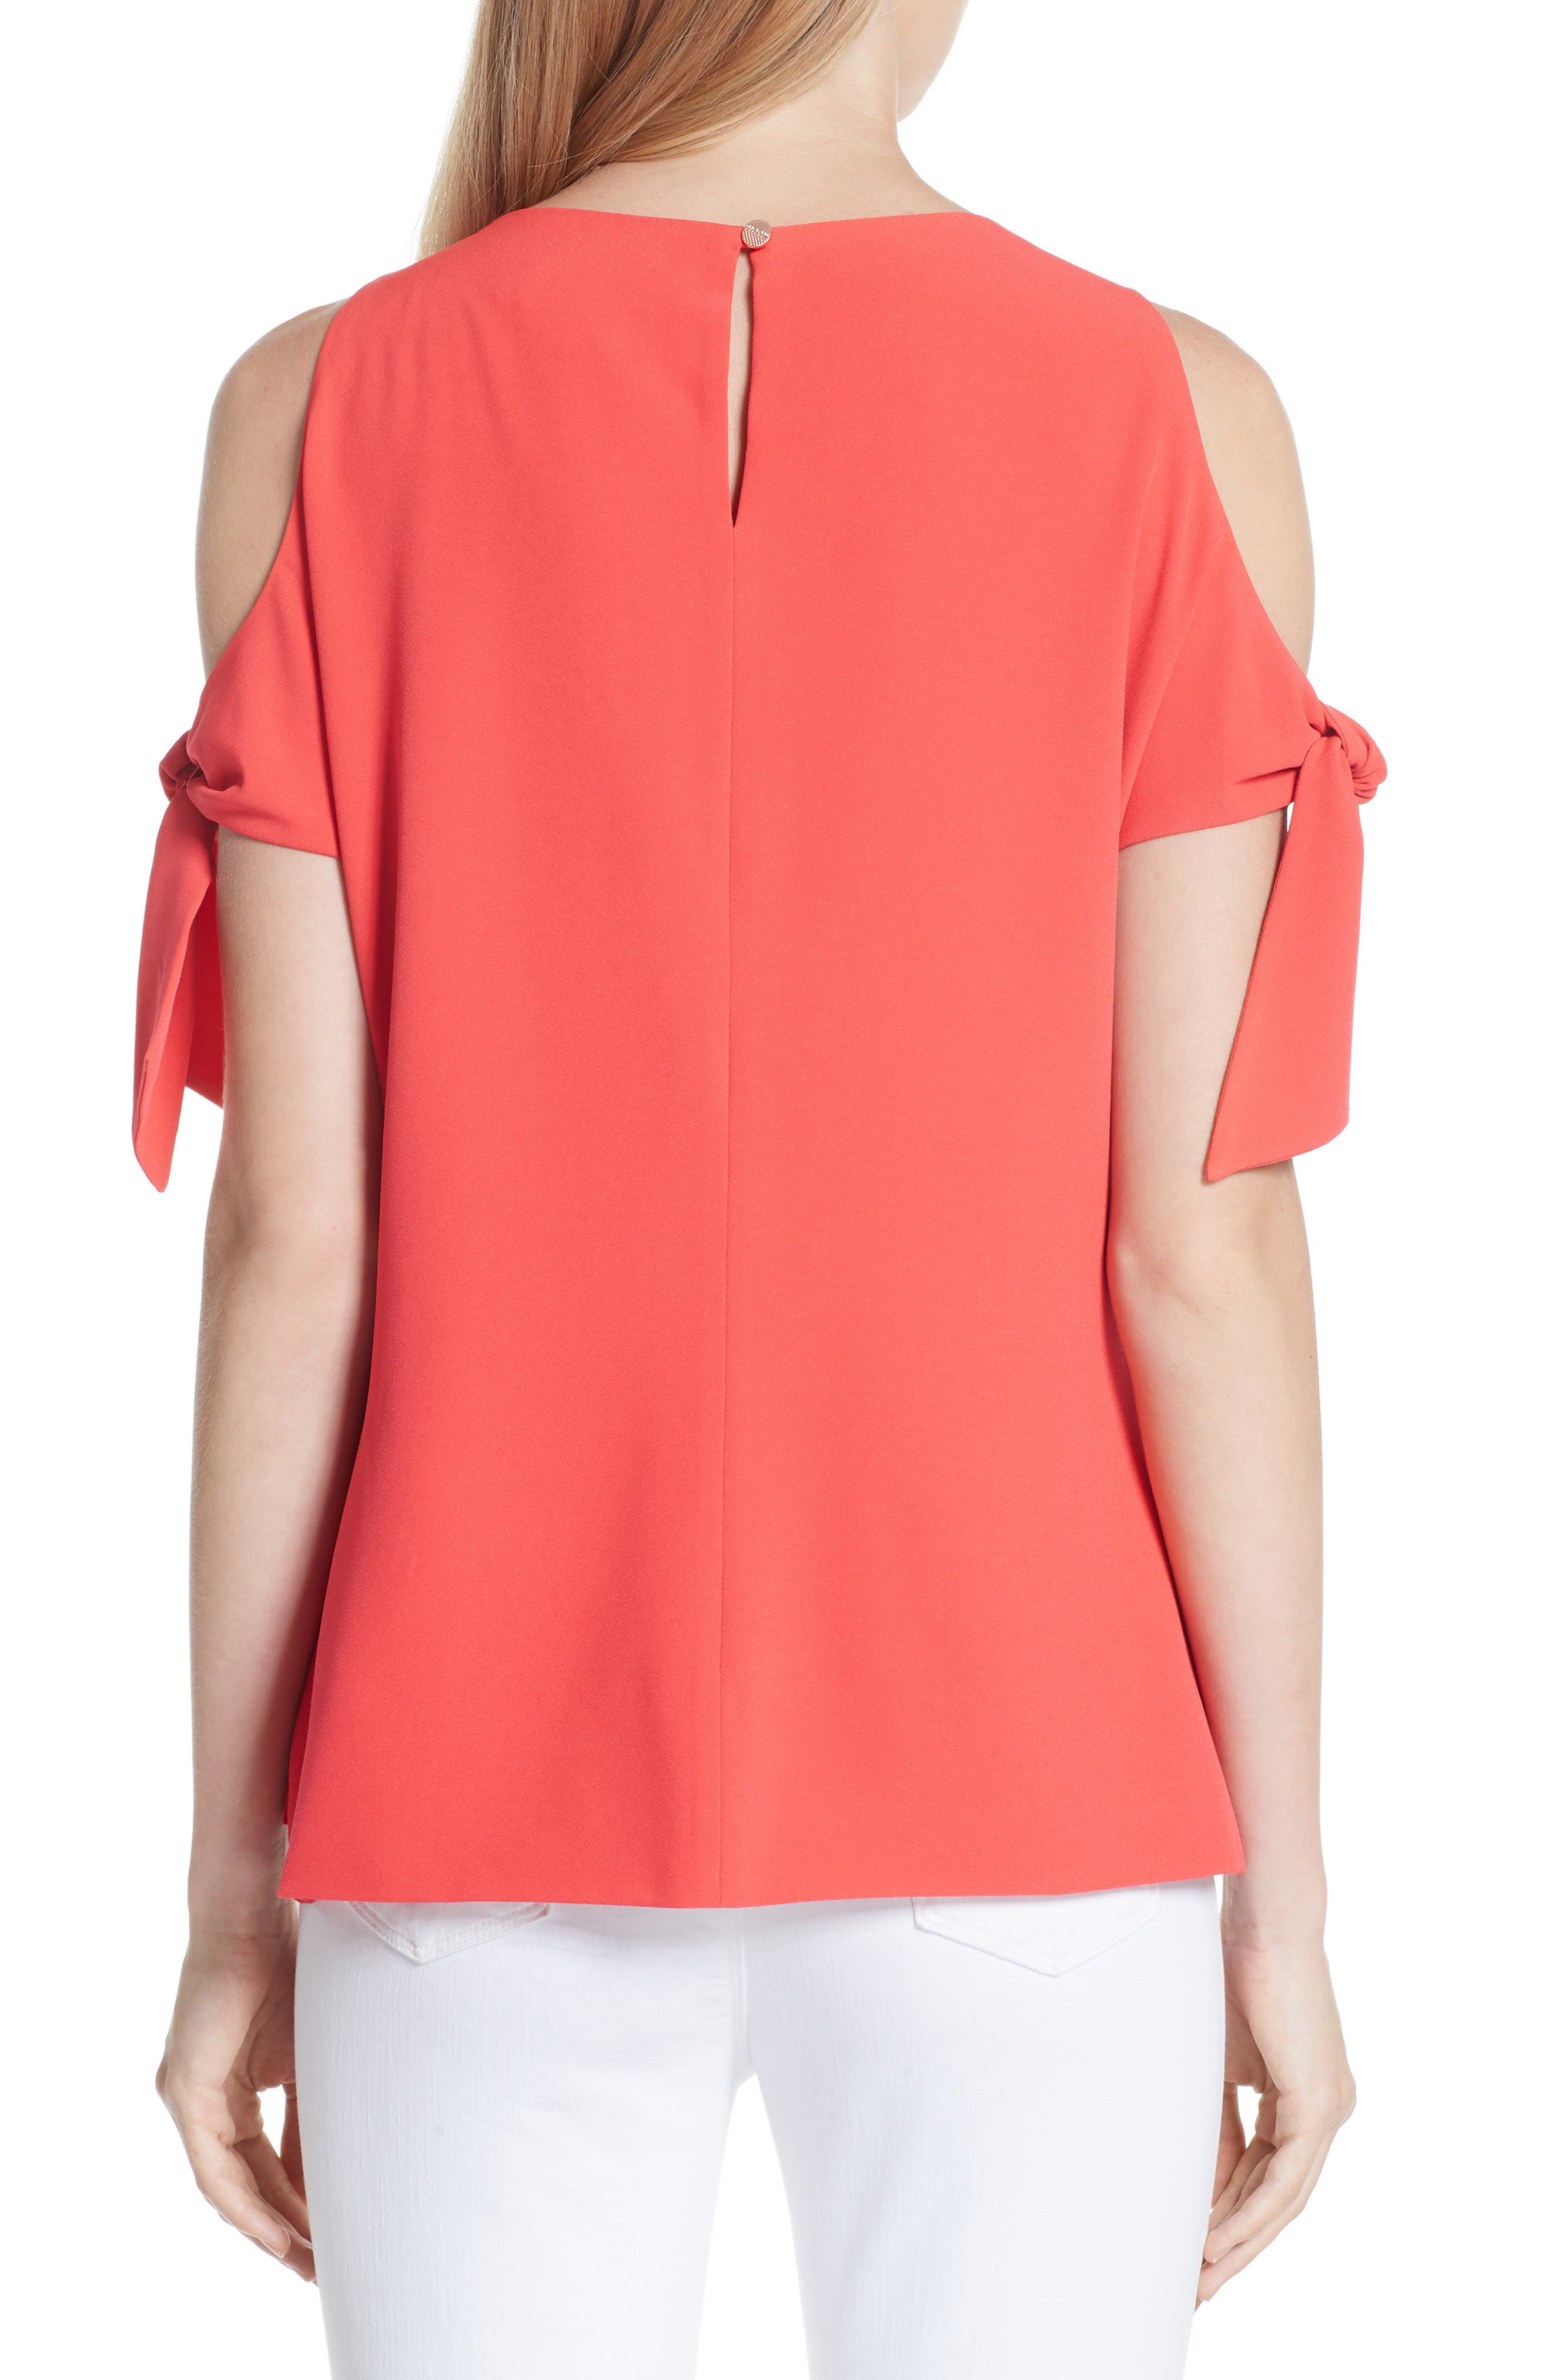 Yaele Cold Shoulder Top,                             Alternate thumbnail 2, color,                             Bright Red